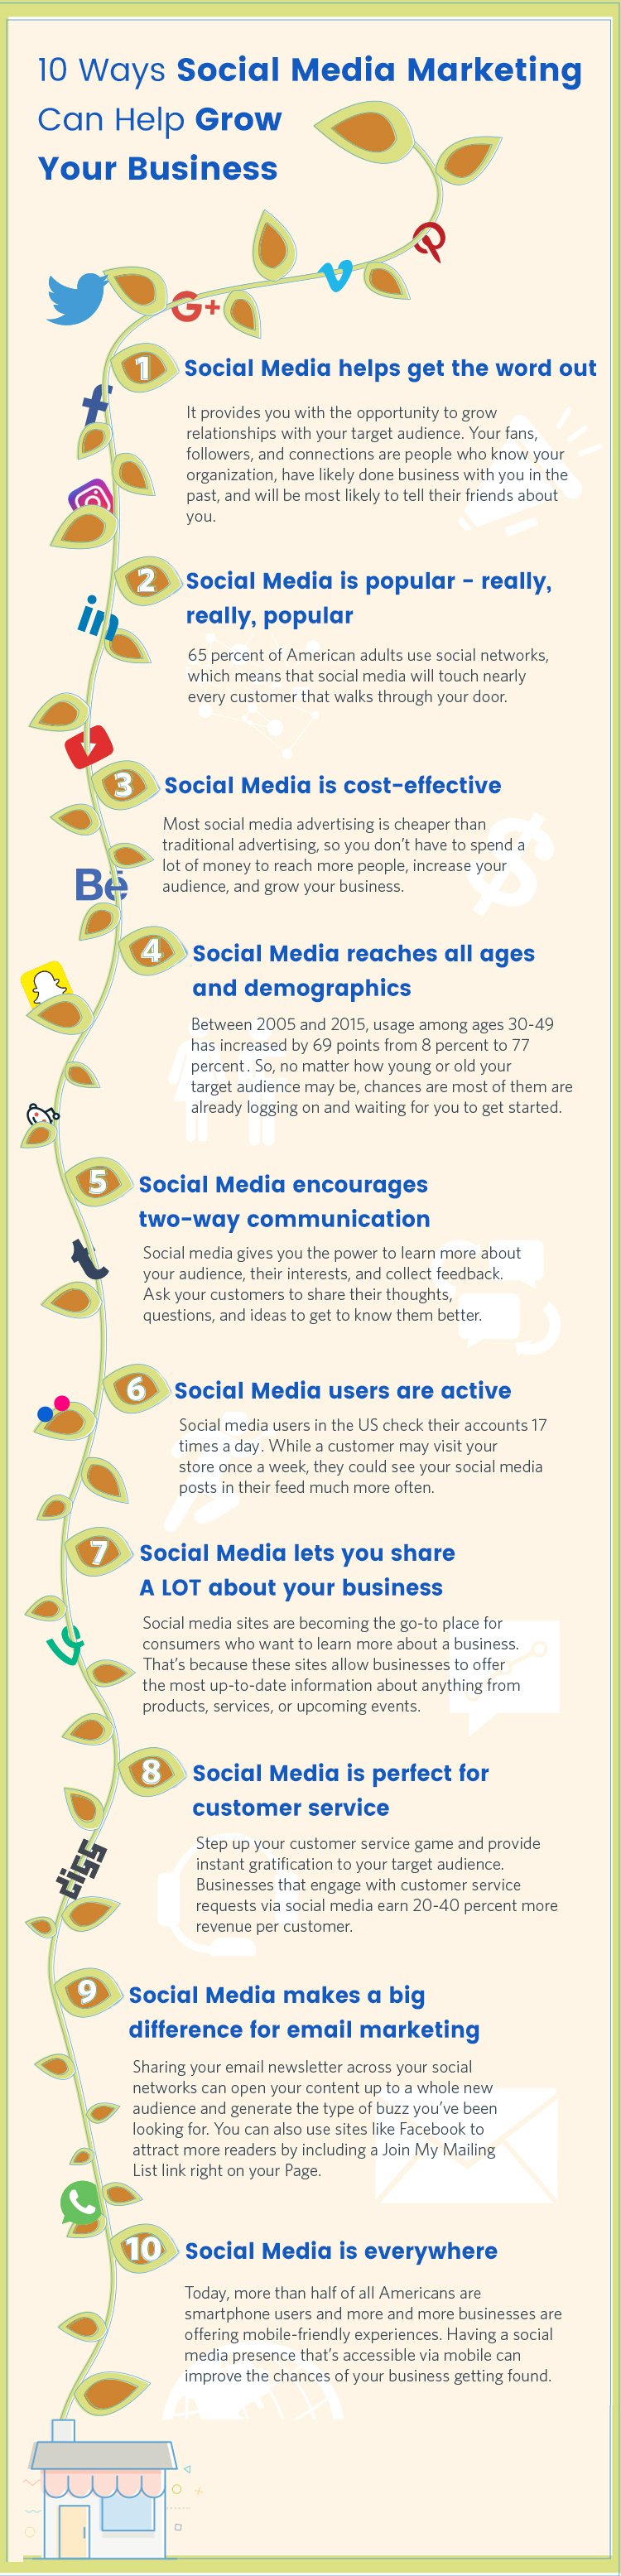 10ways to social media marketing can help grow business